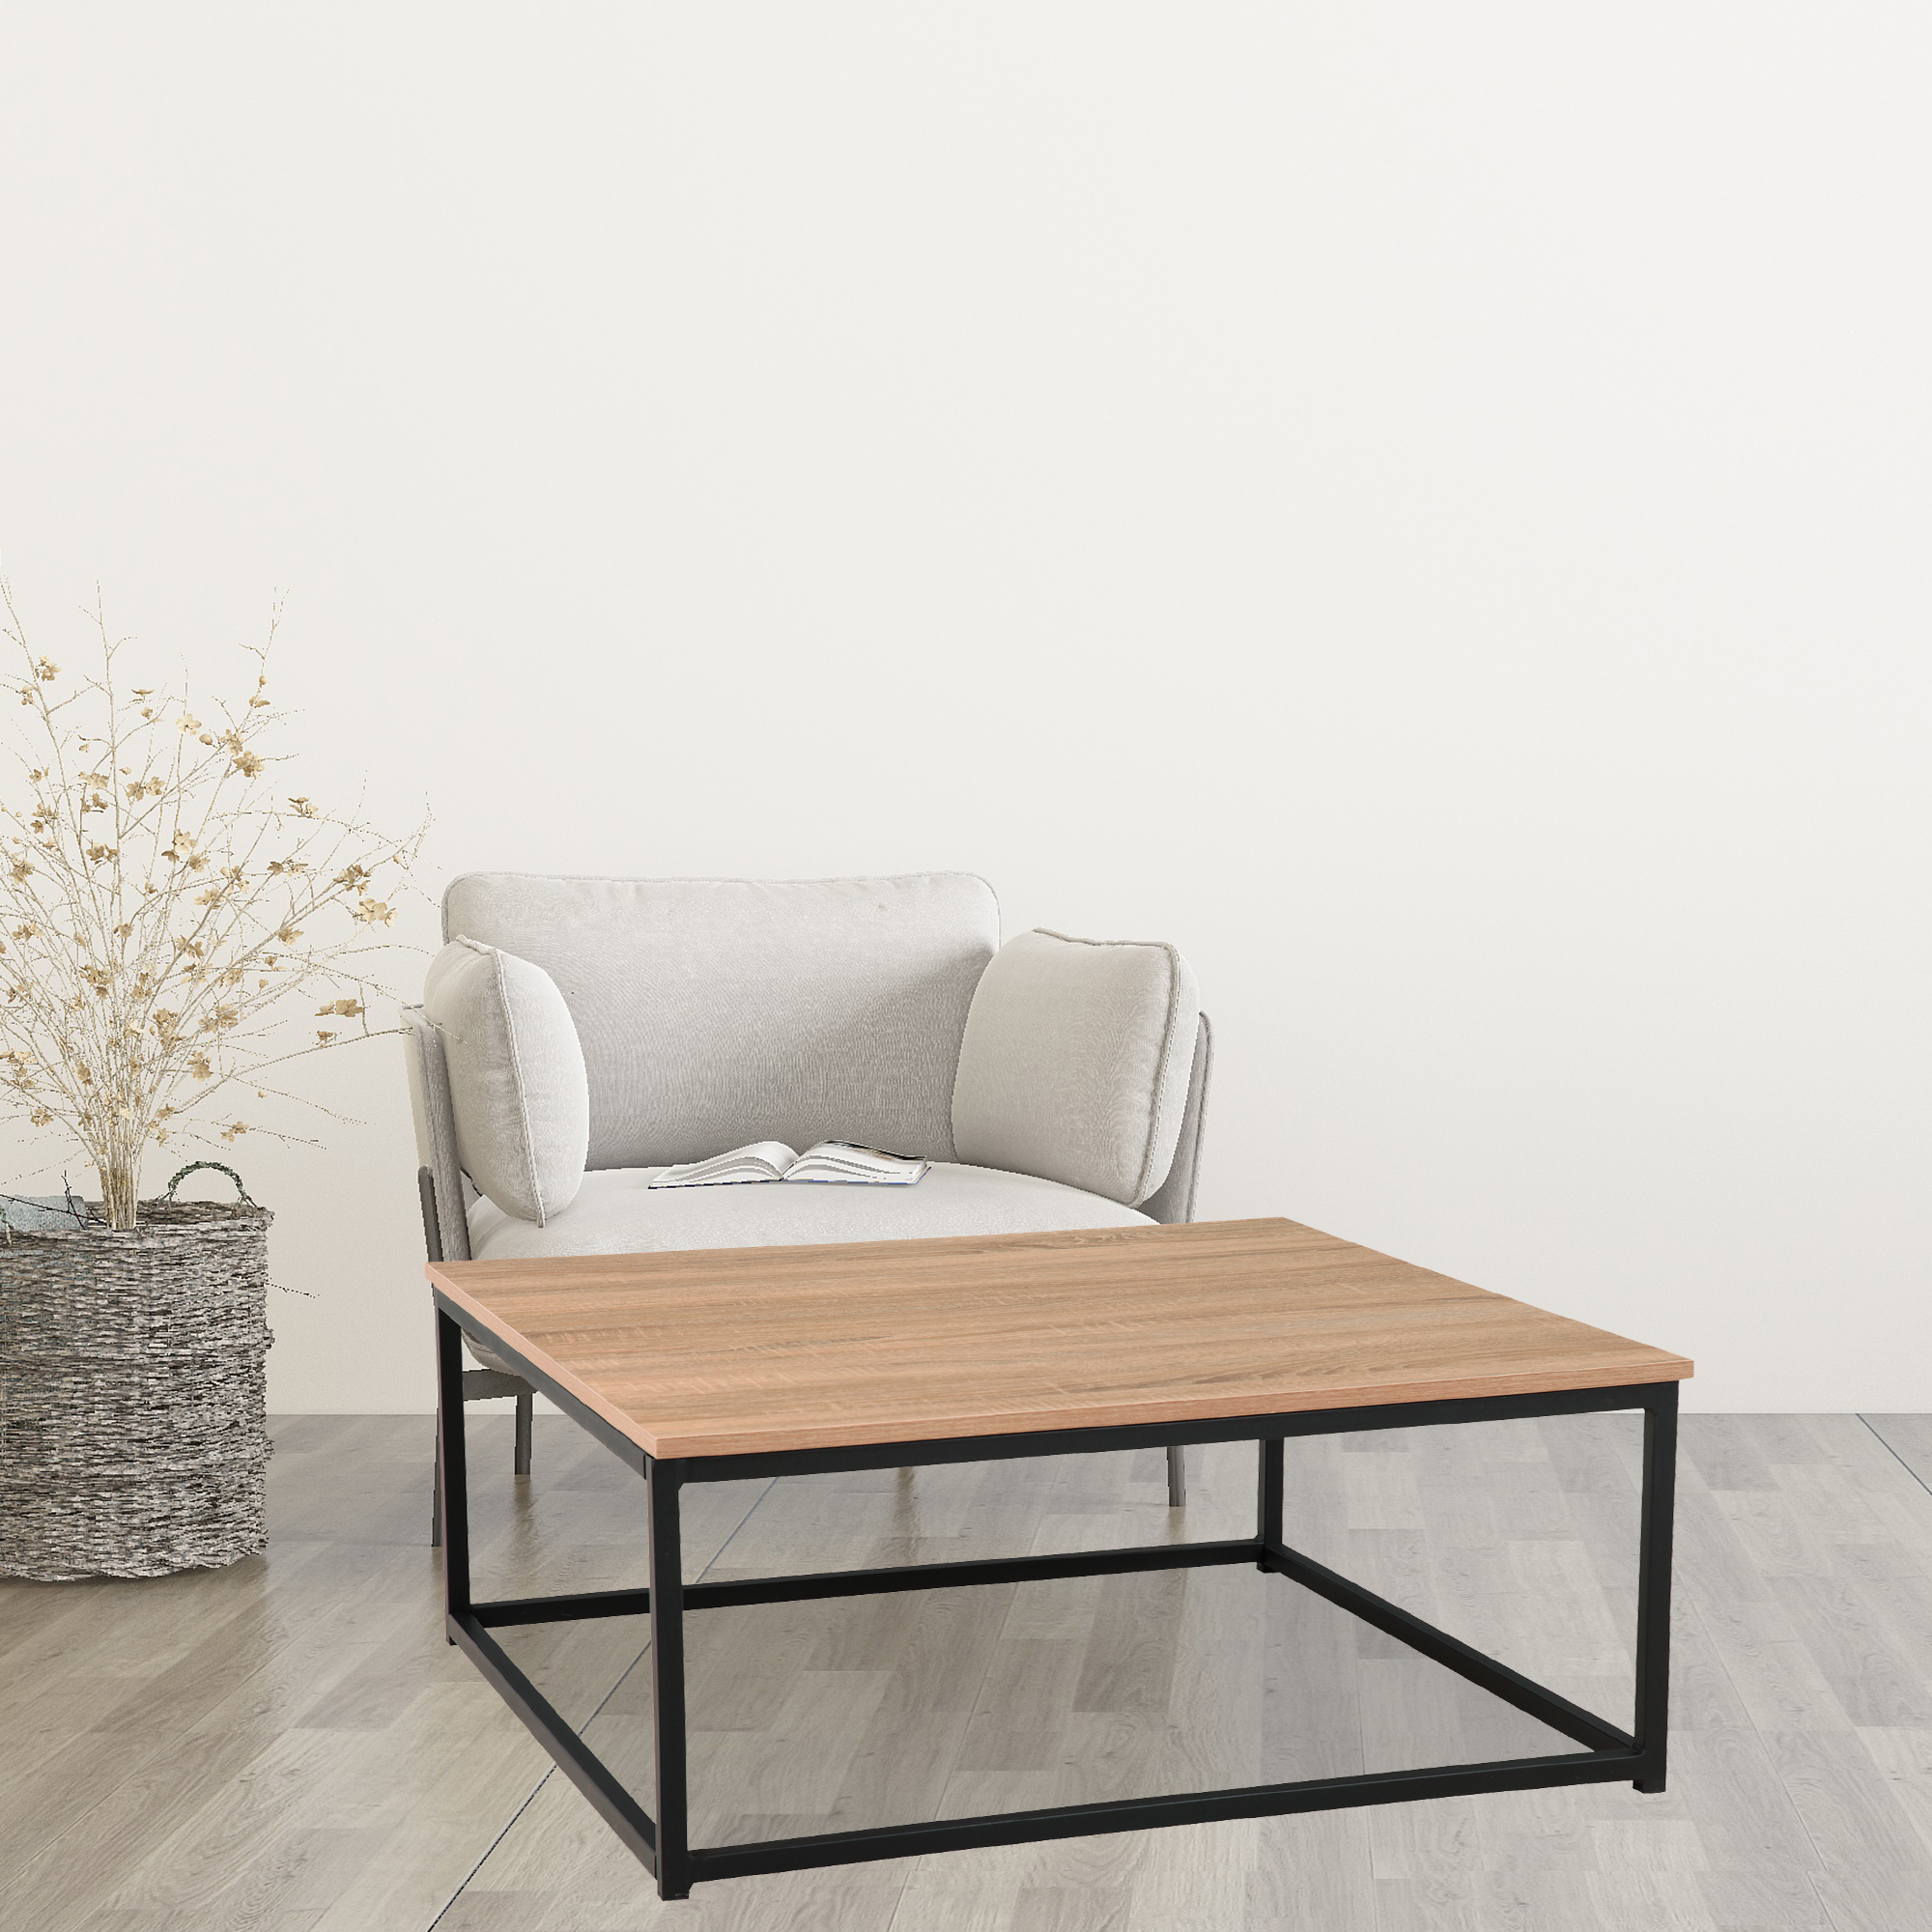 Coffee Tables For Living Room Modern Industrial Coffee Table With Metal Box Frame Accent Cocktail Table Sturdy End Tables For Home Bedroom Dining Room Cafe 31 5 Lx31 5 Wx13 39 H Oak W13014 Walmart Com Walmart Com